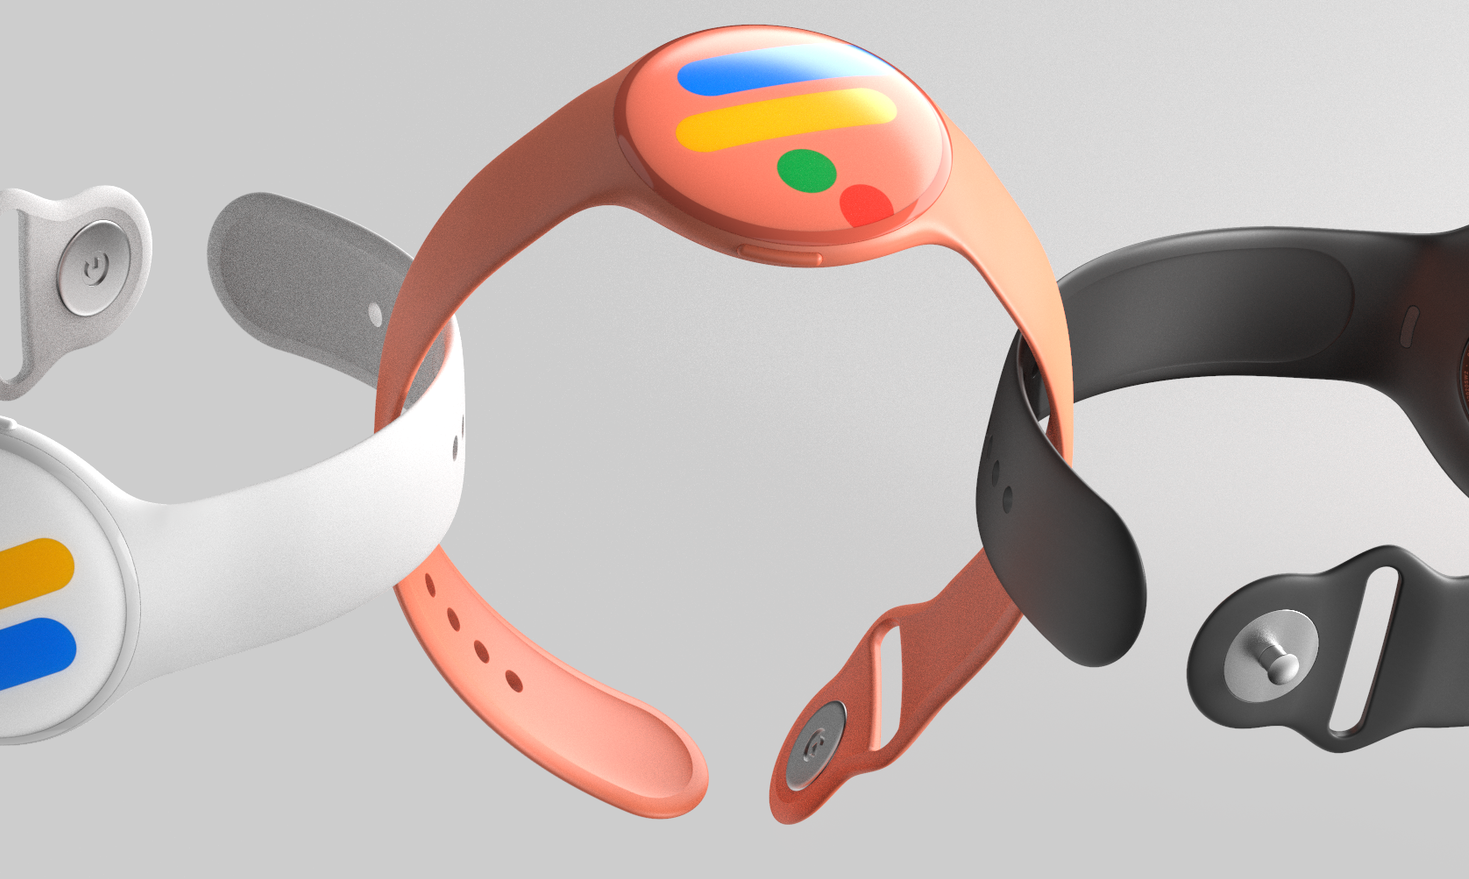 James Tsai's concept design for the much rumored Pixel Watch